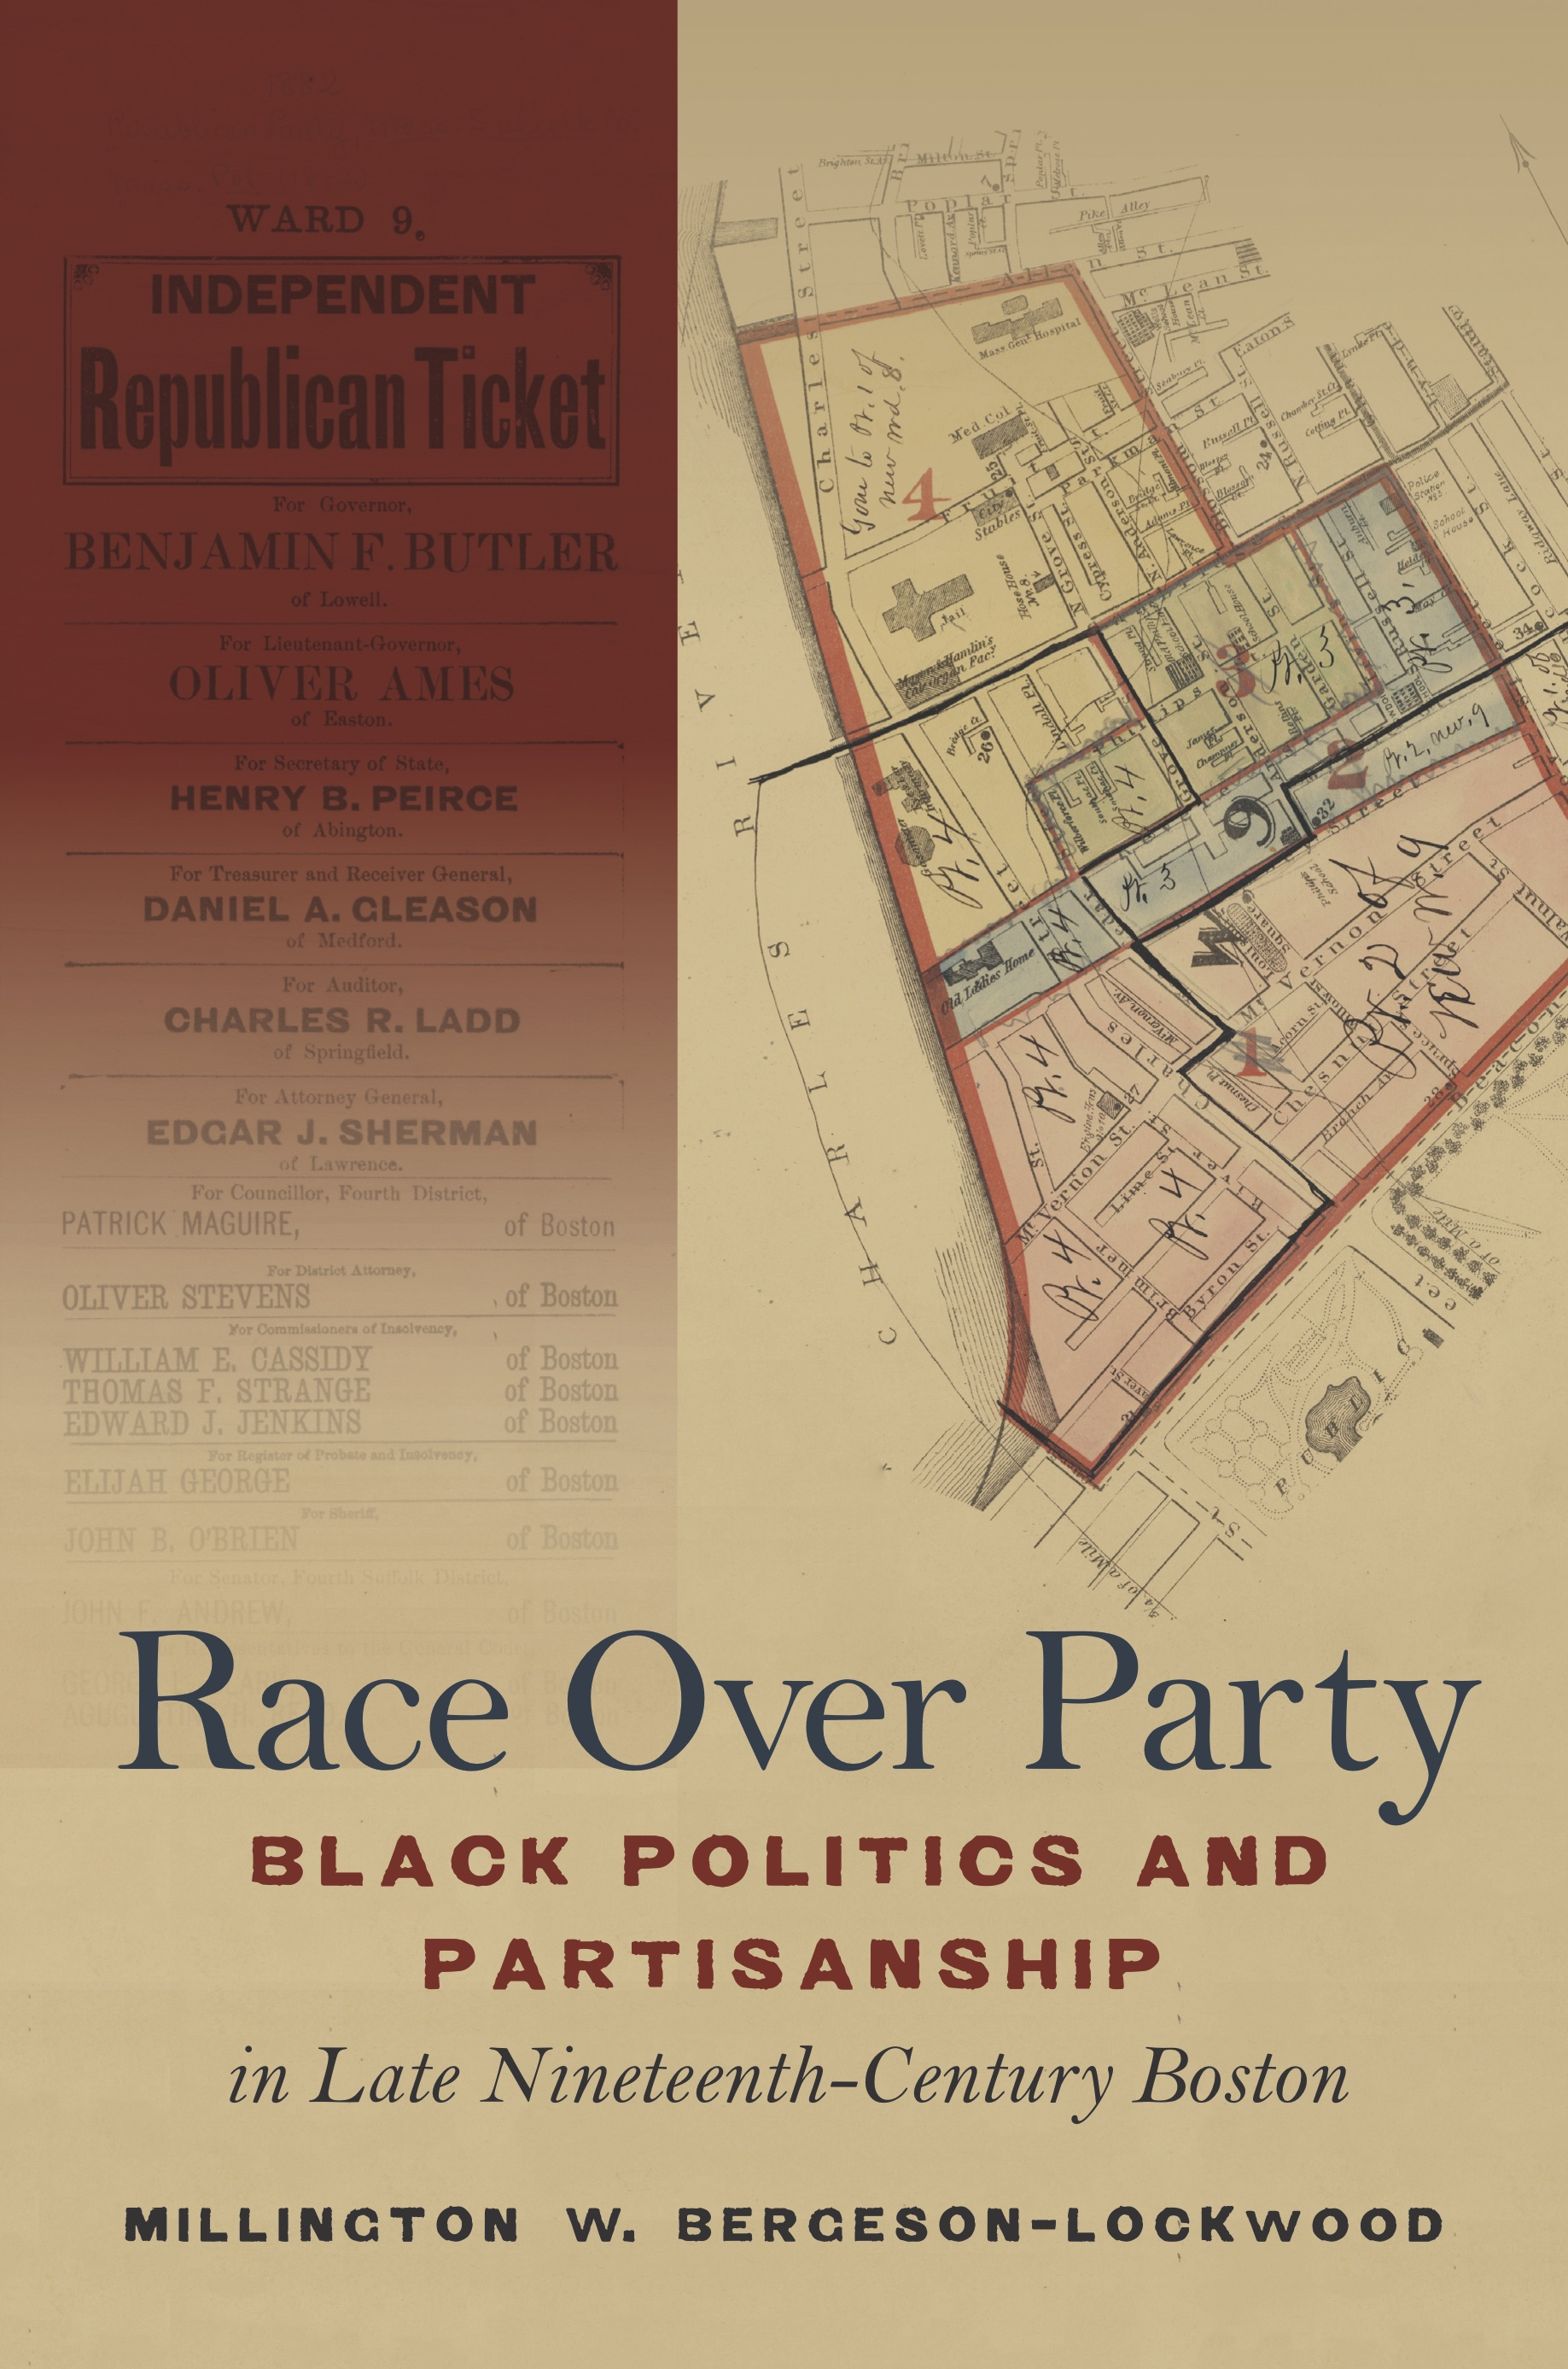 """Race Over Party - In late nineteenth-century Boston, battles over black party loyalty were fights over the place of African Americans in the post–Civil War nation. In his fresh in-depth study of black partisanship and politics, Millington W. Bergeson-Lockwood demonstrates that party politics became the terrain upon which black Bostonians tested the promise of equality in America's democracy. Most African Americans remained loyal Republicans, but Race Over Partyhighlights the actions and aspirations of a cadre of those who argued that the GOP took black votes for granted and offered little meaningful reward for black support. These activists branded themselves """"independents,"""" forging new alliances and advocating support of whichever candidate would support black freedom regardless of party.By the end of the century, however, it became clear that partisan politics offered little hope for the protection of black rights and lives in the face of white supremacy and racial violence. Even so, Bergeson-Lockwood shows how black Bostonians' faith in self-reliance, political autonomy, and dedicated organizing inspired future generations of activists who would carry these legacies into the foundation of the twentieth-century civil rights movement."""